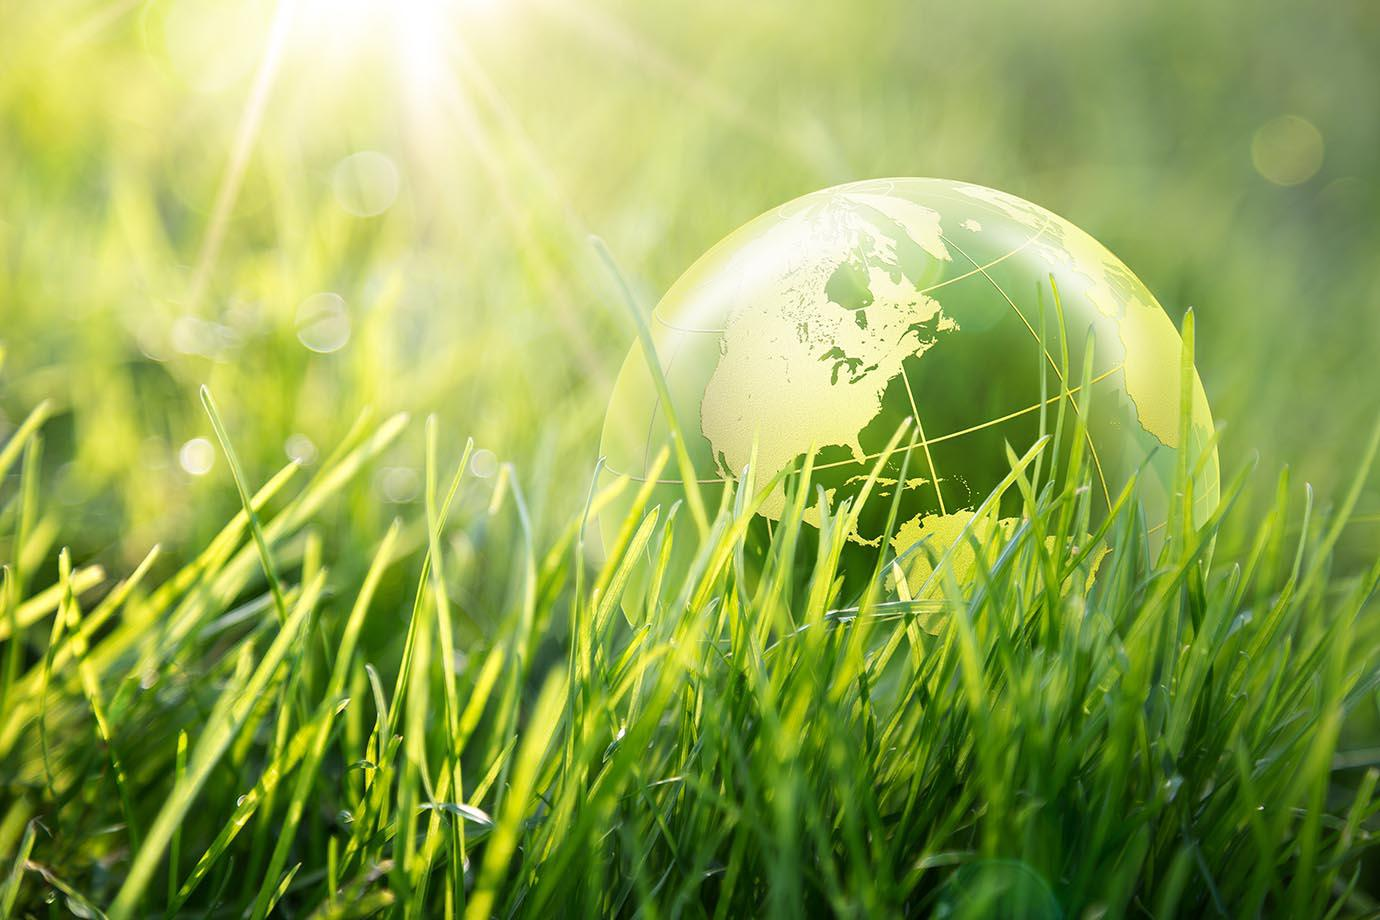 Glass globe laying in a bed of long grass